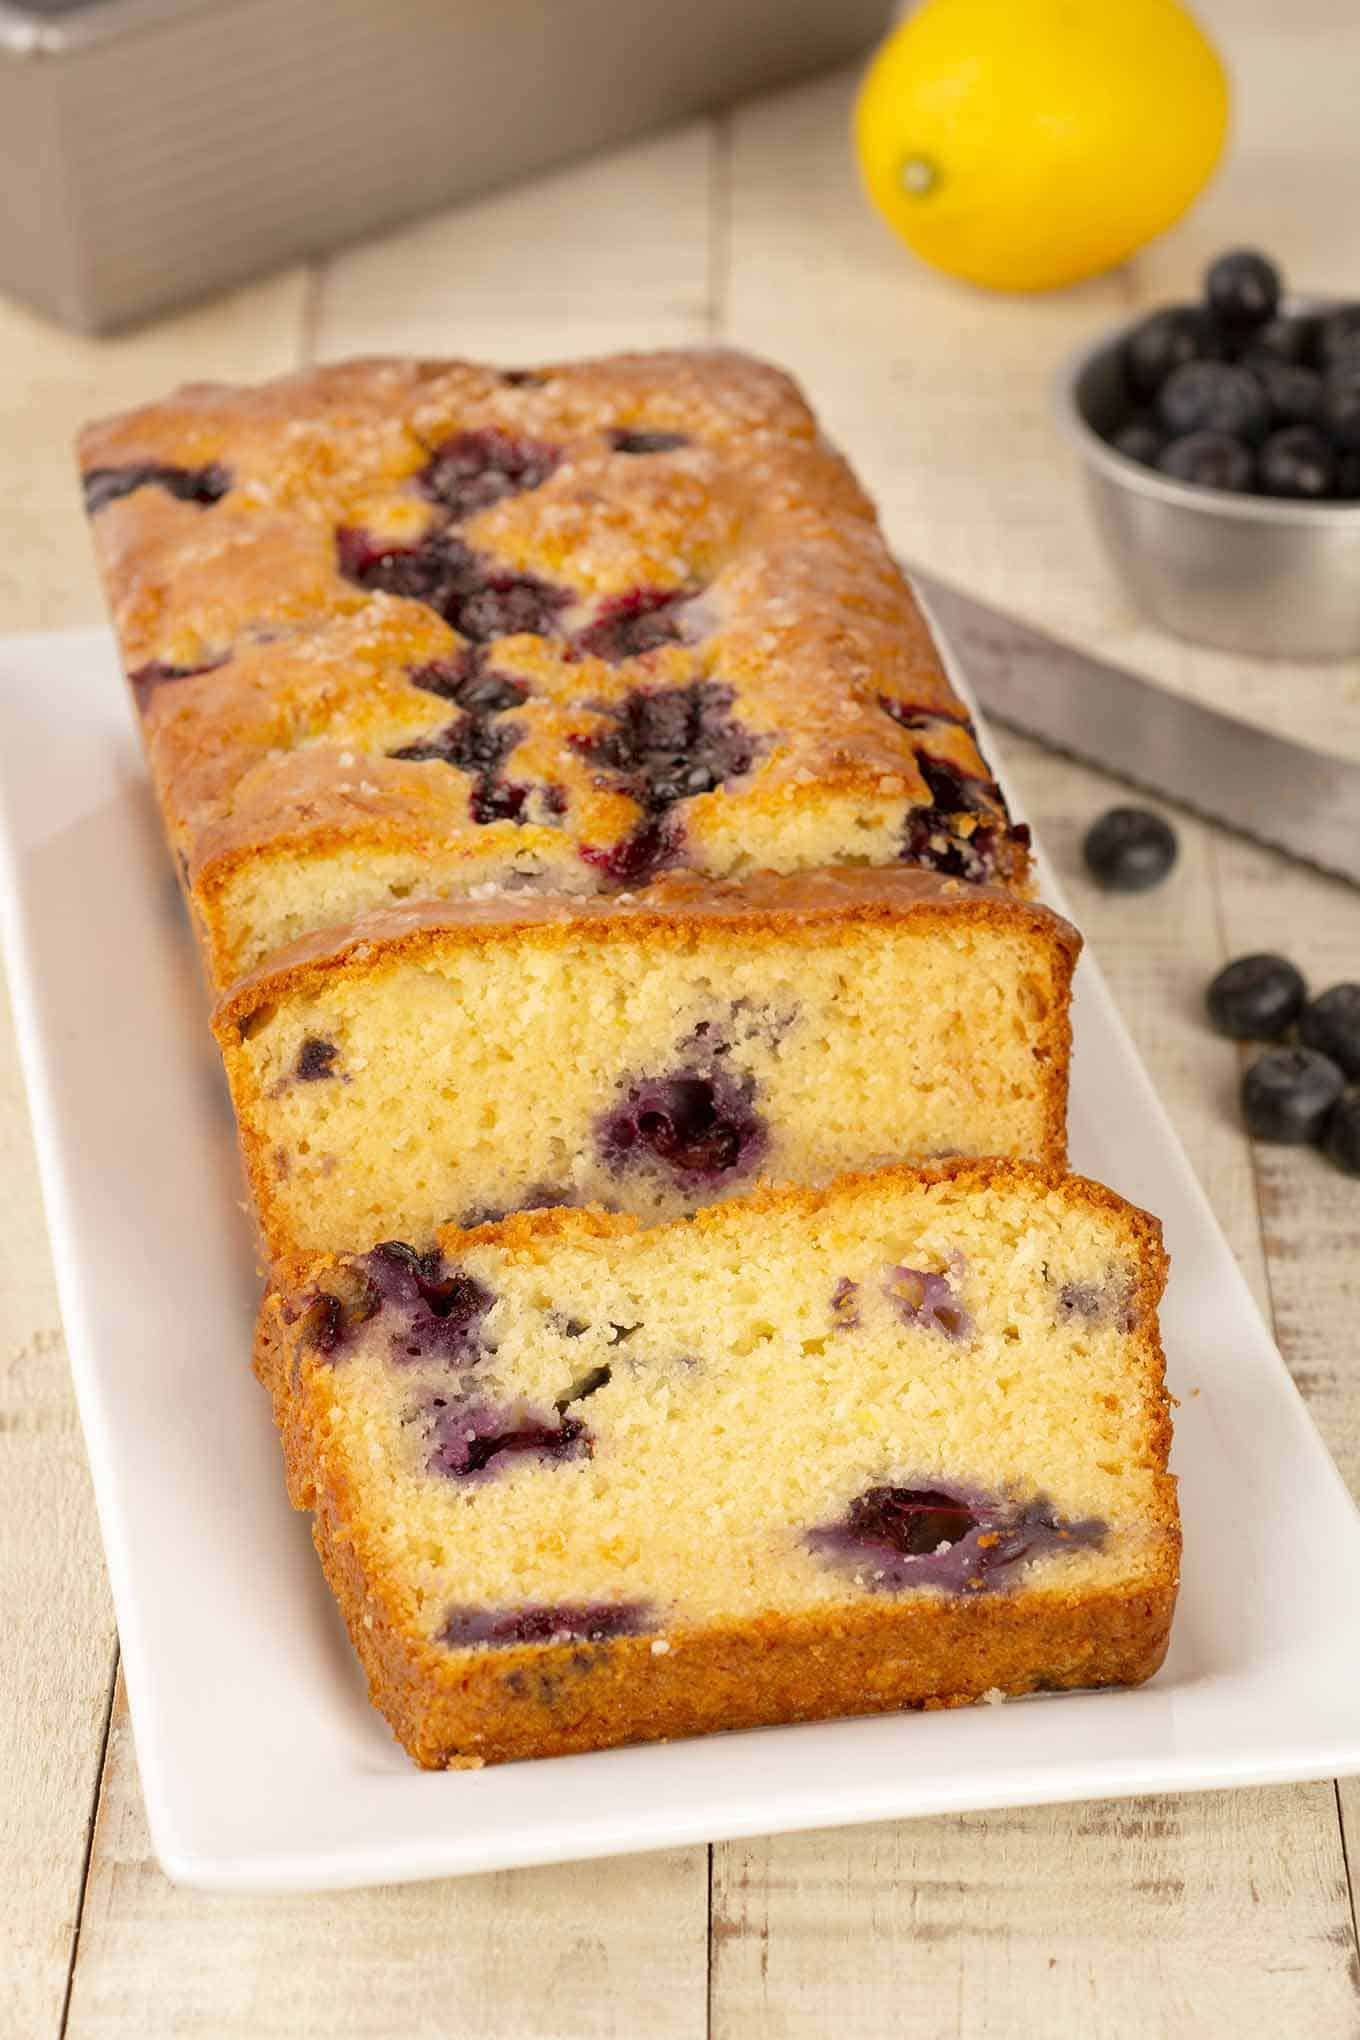 A serving plate of lemon blueberry loaf cake with slices off the end to show its interior texture.